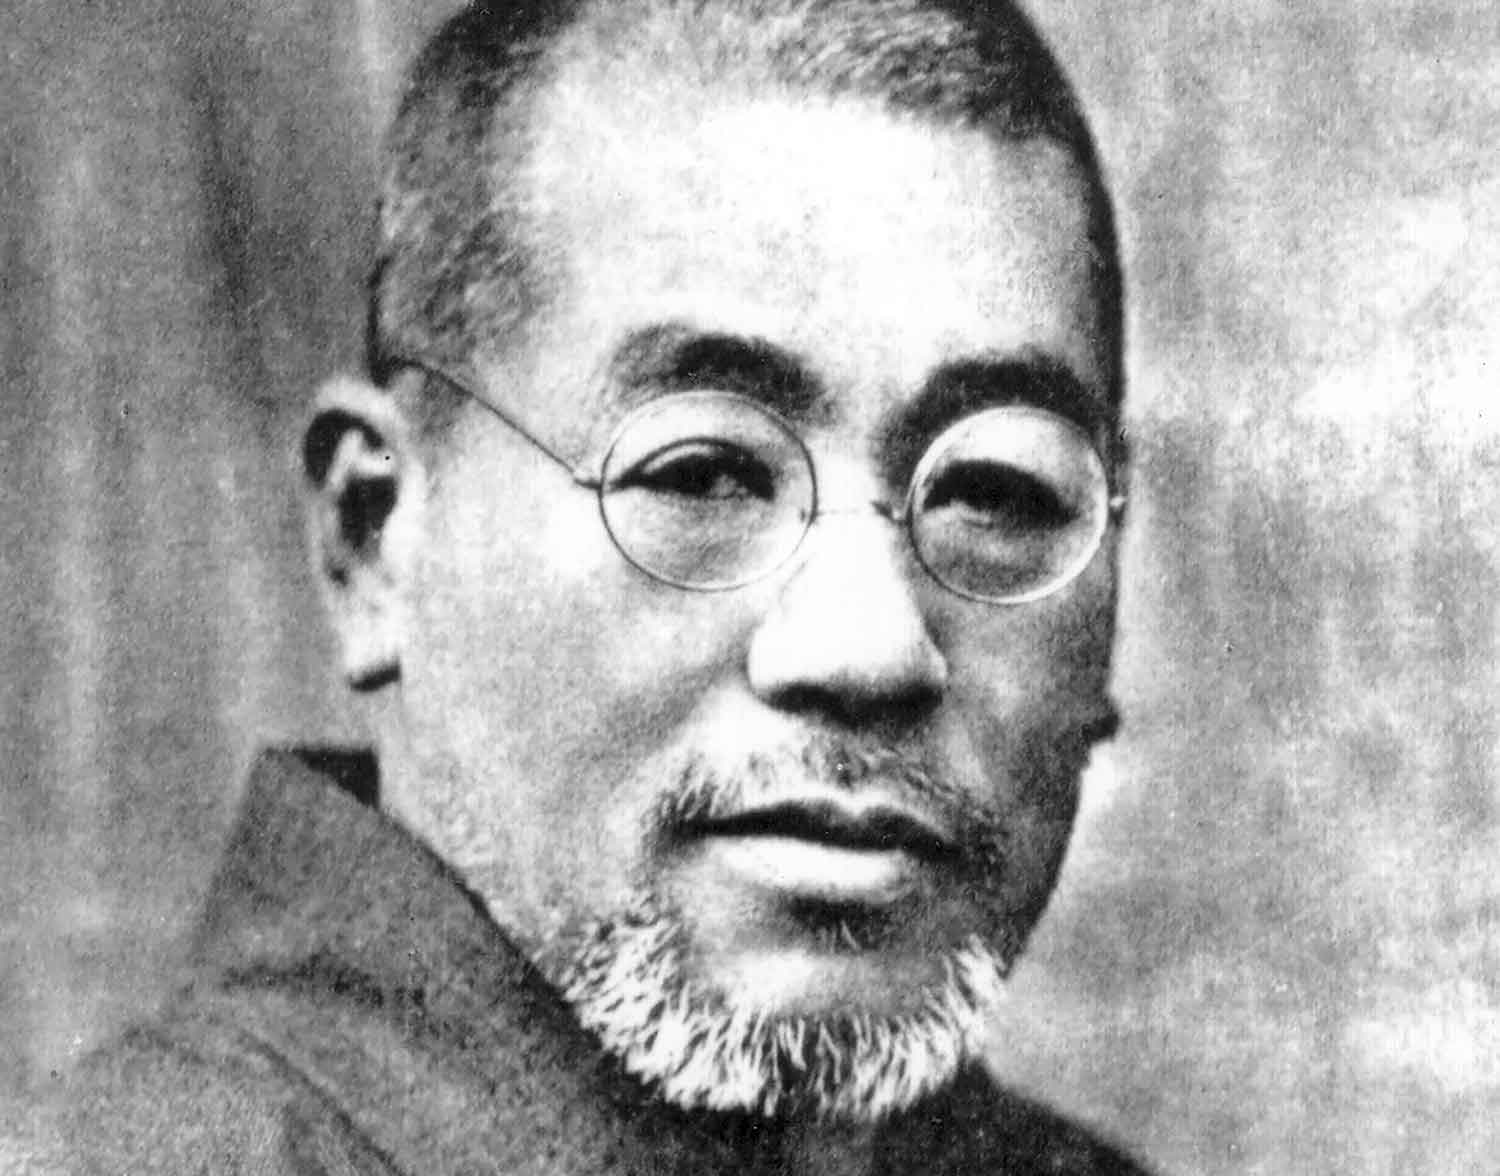 usui sensei - founder of reiki